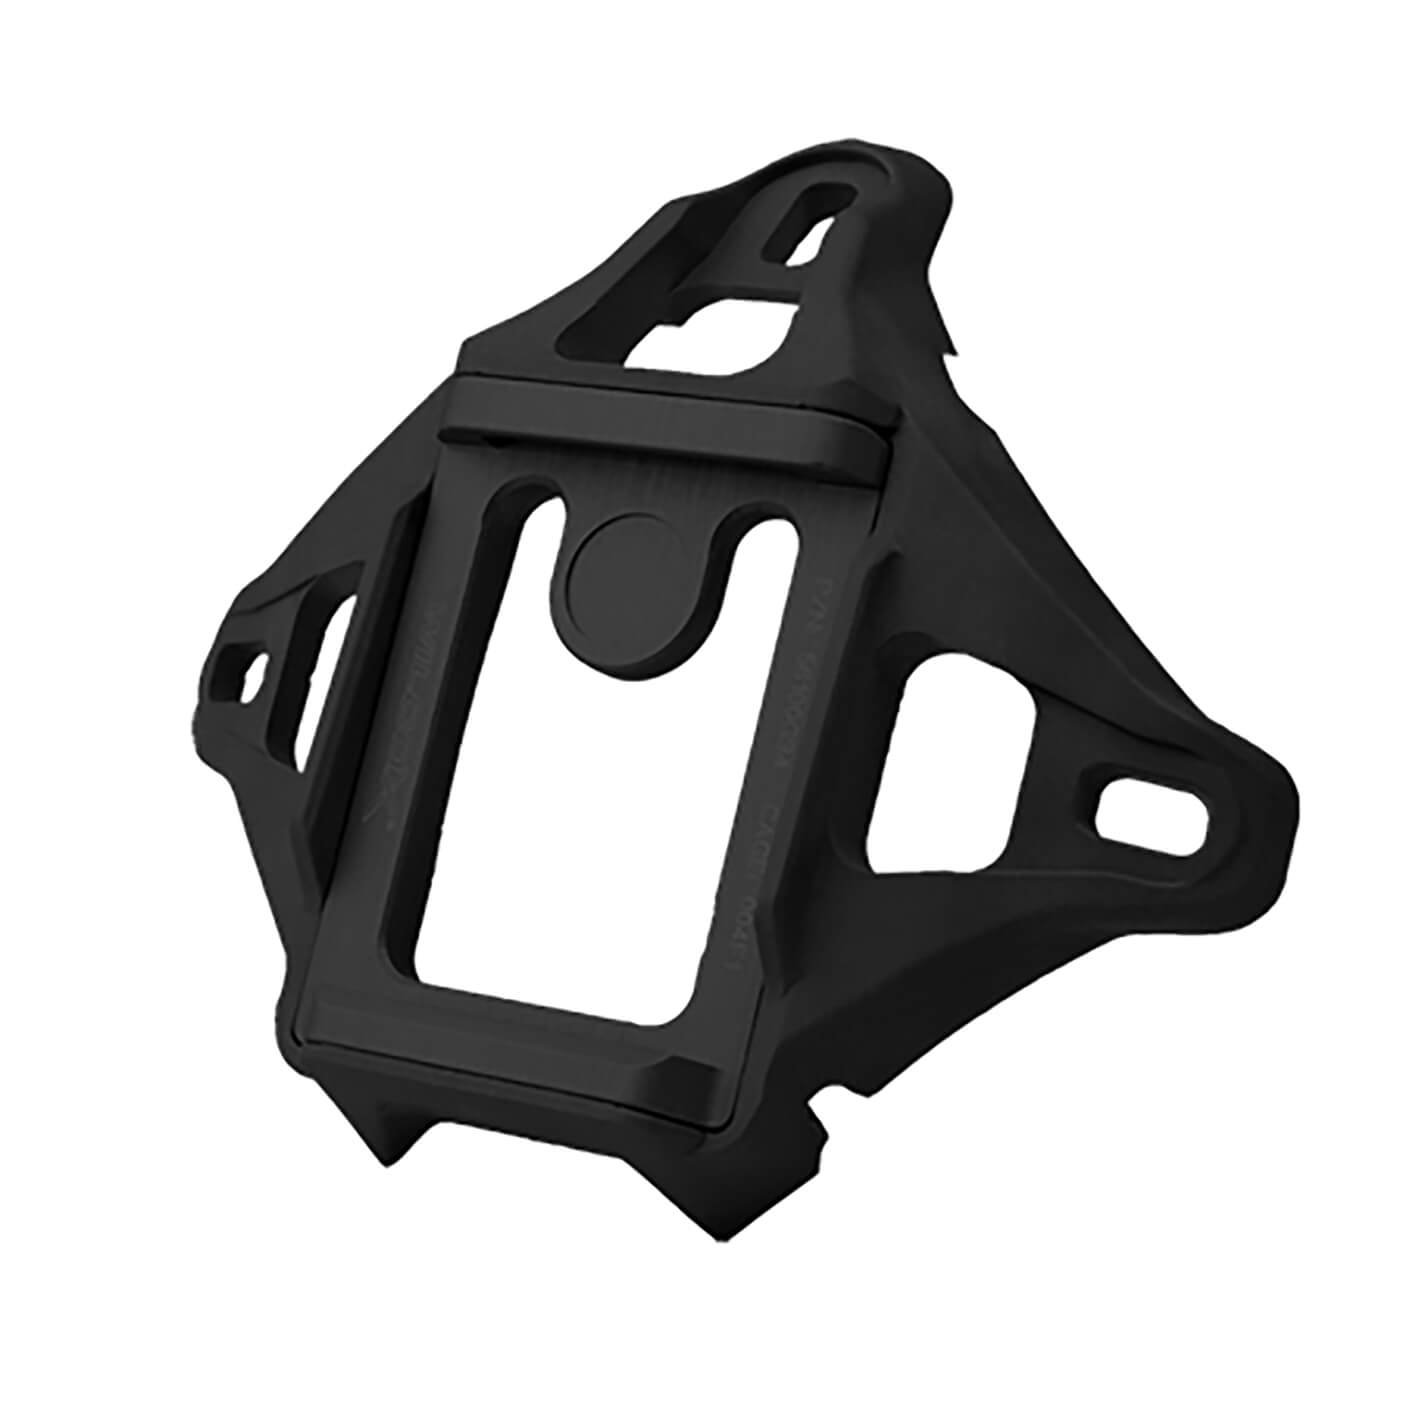 Picture for category Helmet Mounts & Accessories